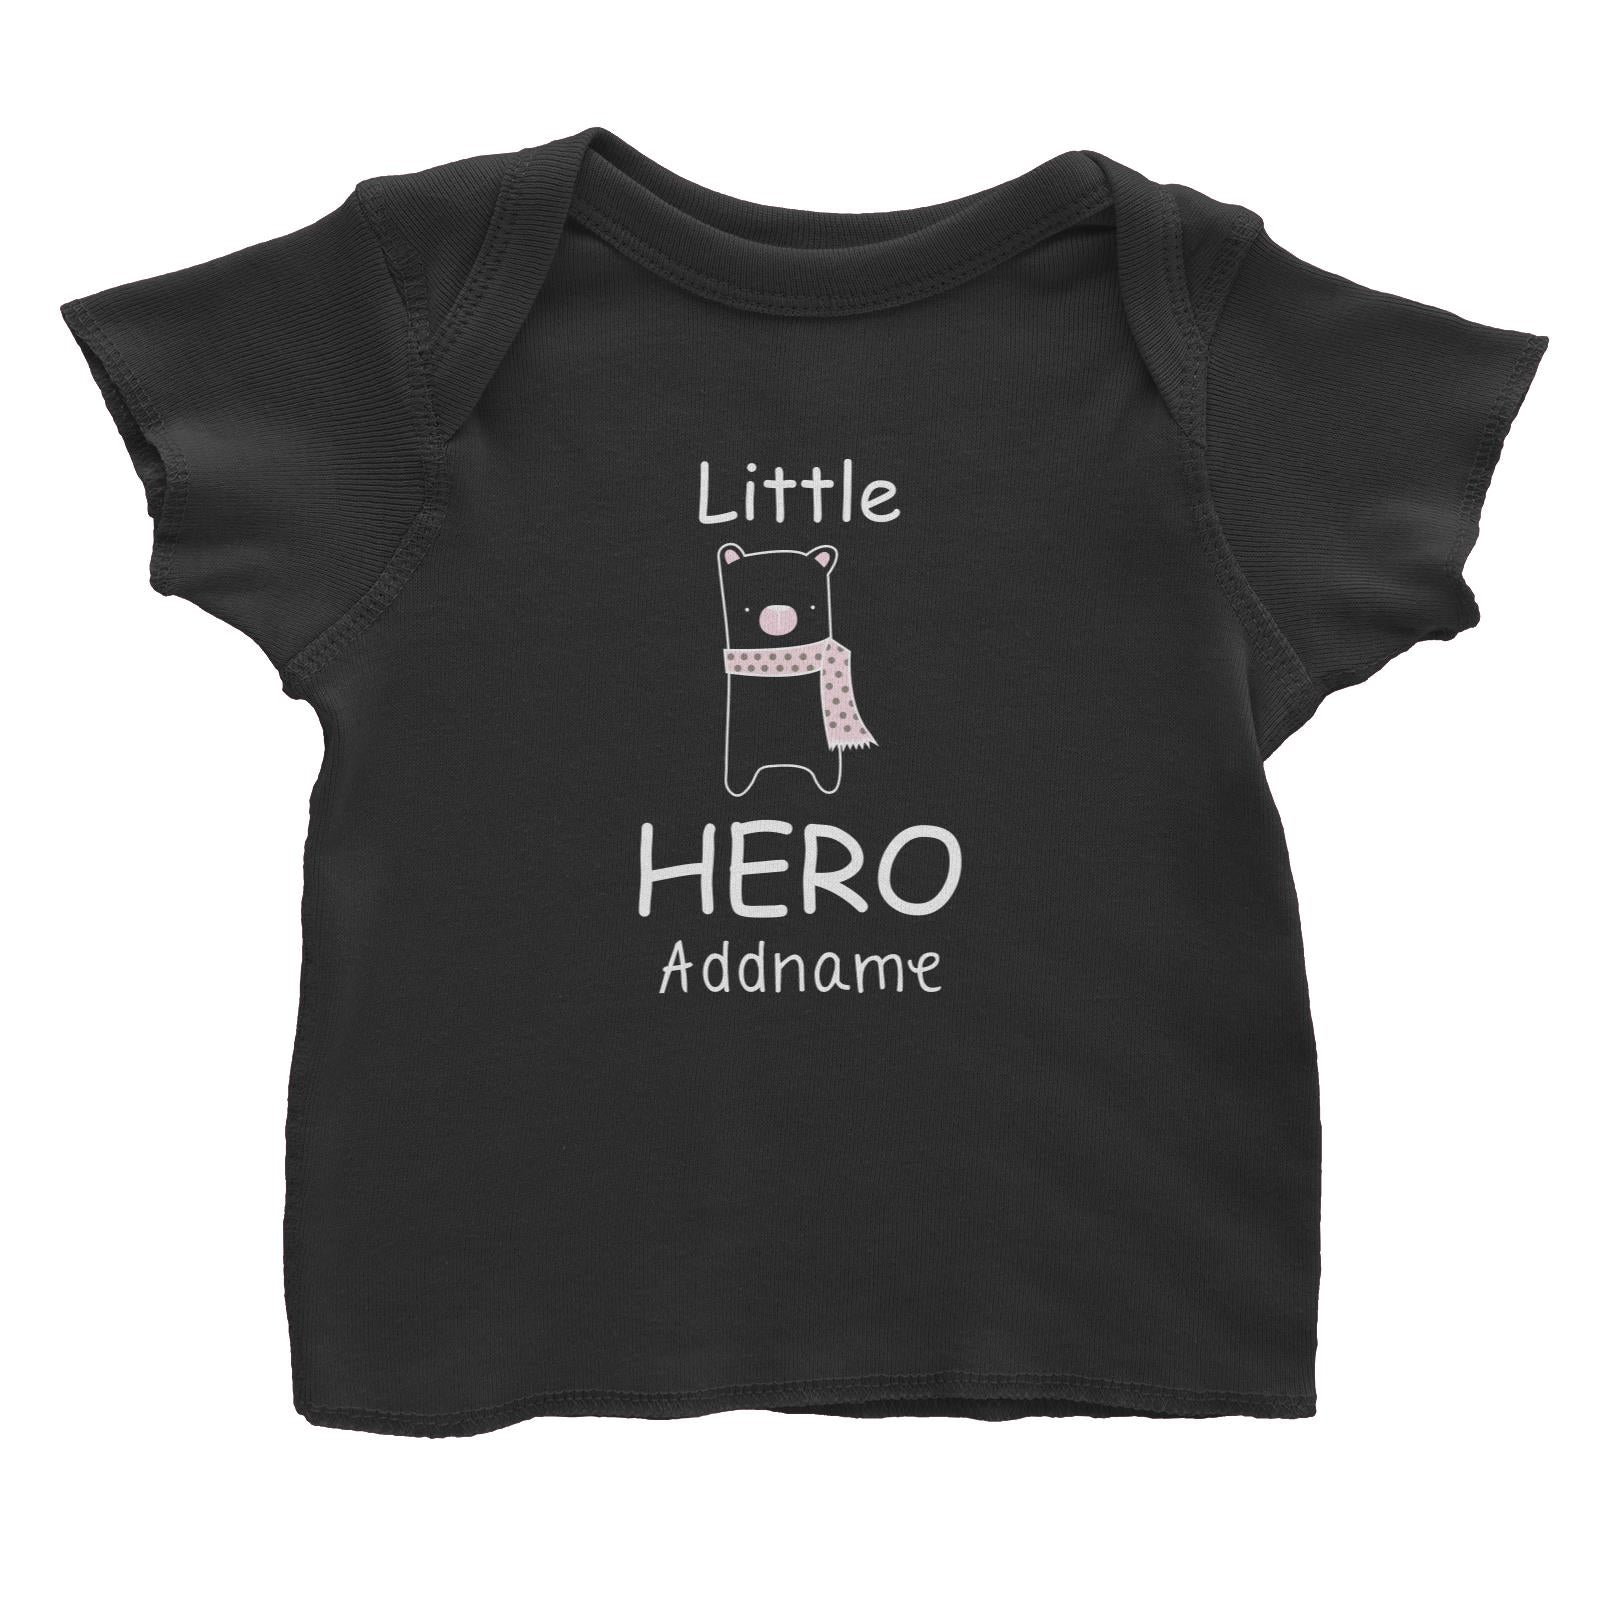 Cute Animals and Friends Series 2 Bear Little Hero Addname Baby T-Shirt